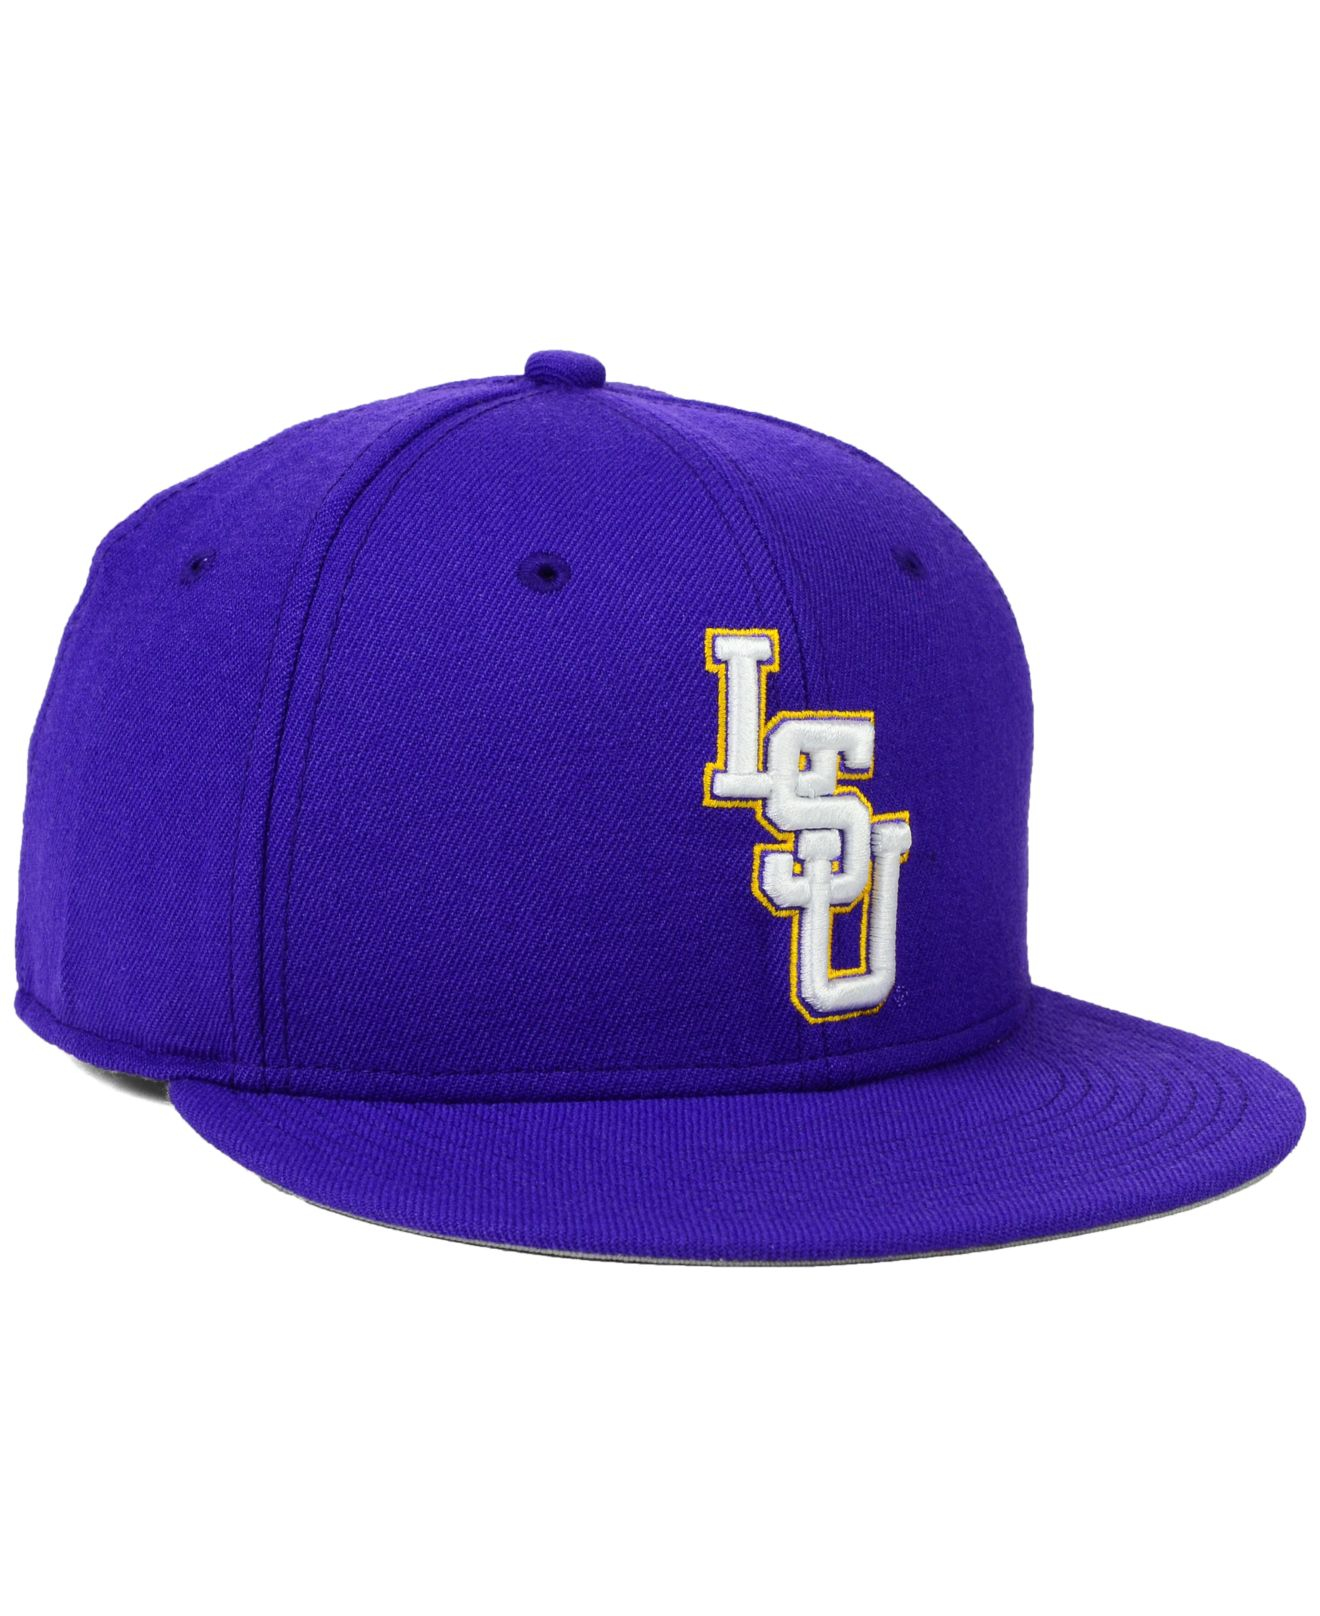 3b86d3c1dc6 Lyst - Nike Lsu Tigers True College Fitted Cap in Purple for Men